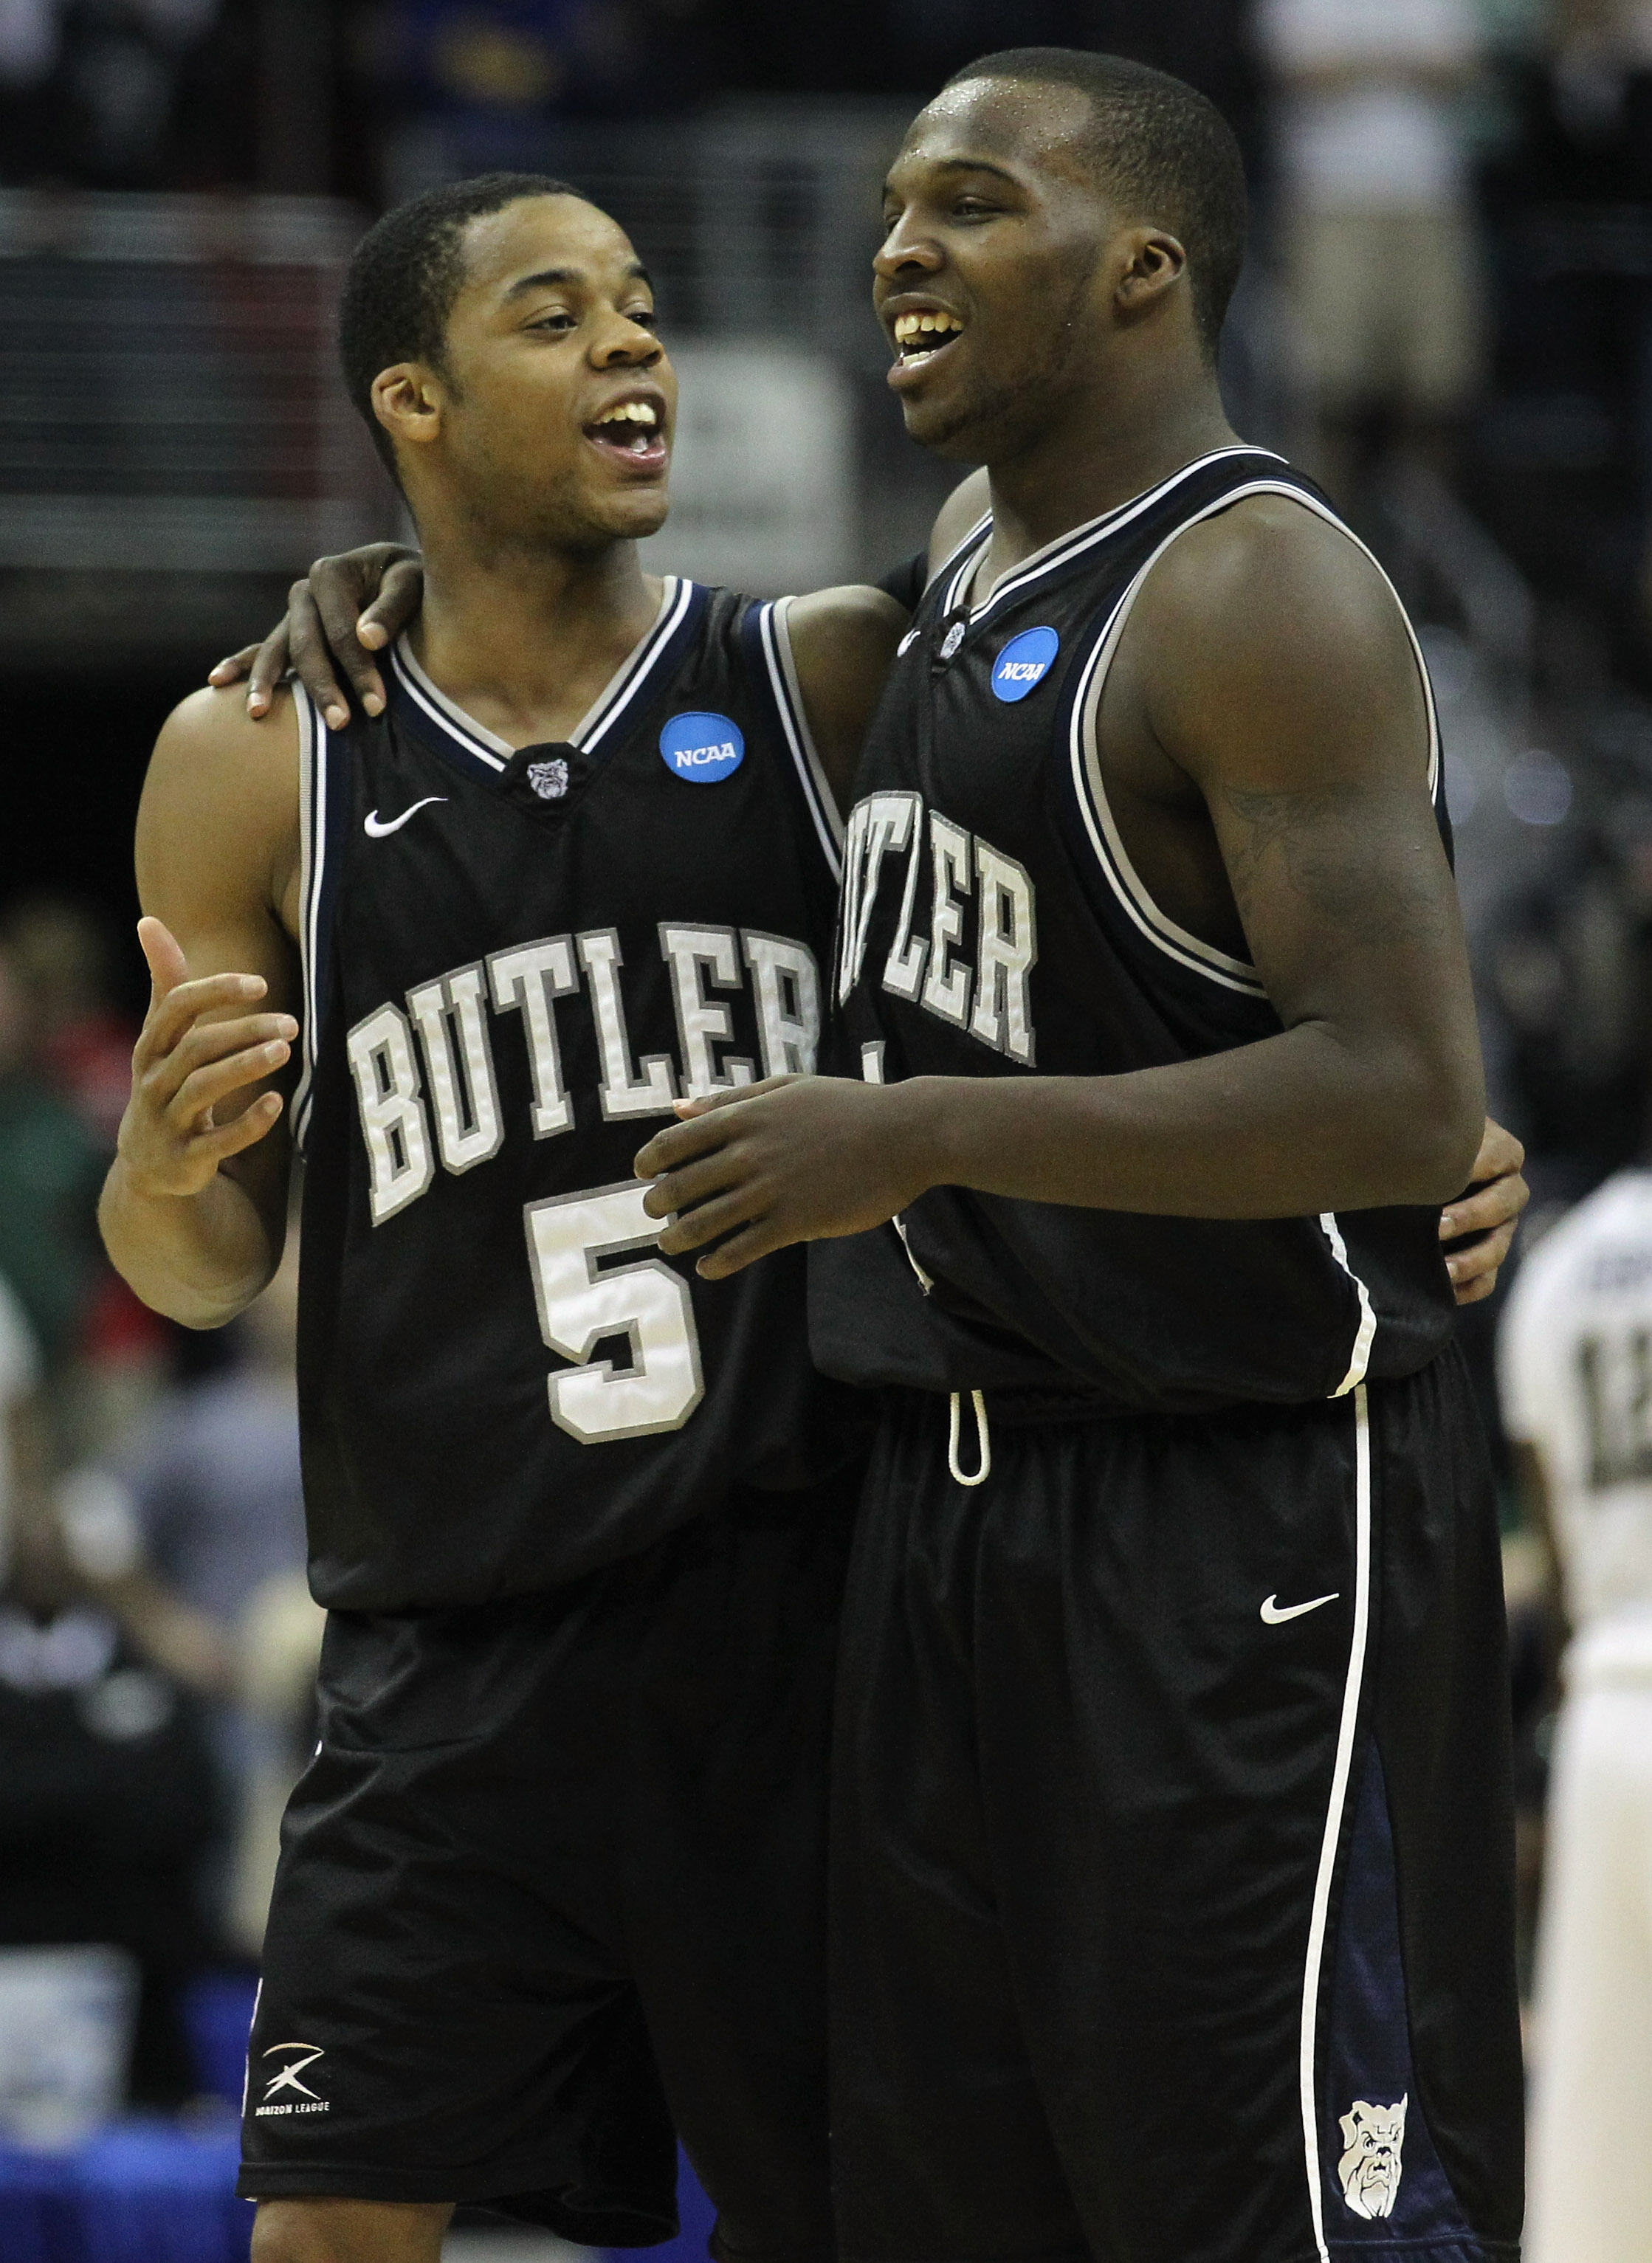 WASHINGTON - MARCH 19:  Ronald Nored #5 of Butler University celebrates with teammate Shelvin Mack #1 following their game against Pittsburgh in the third round of the 2011 NCAA men's basketball tournament at Verizon Center on March 19, 2011 in Washington